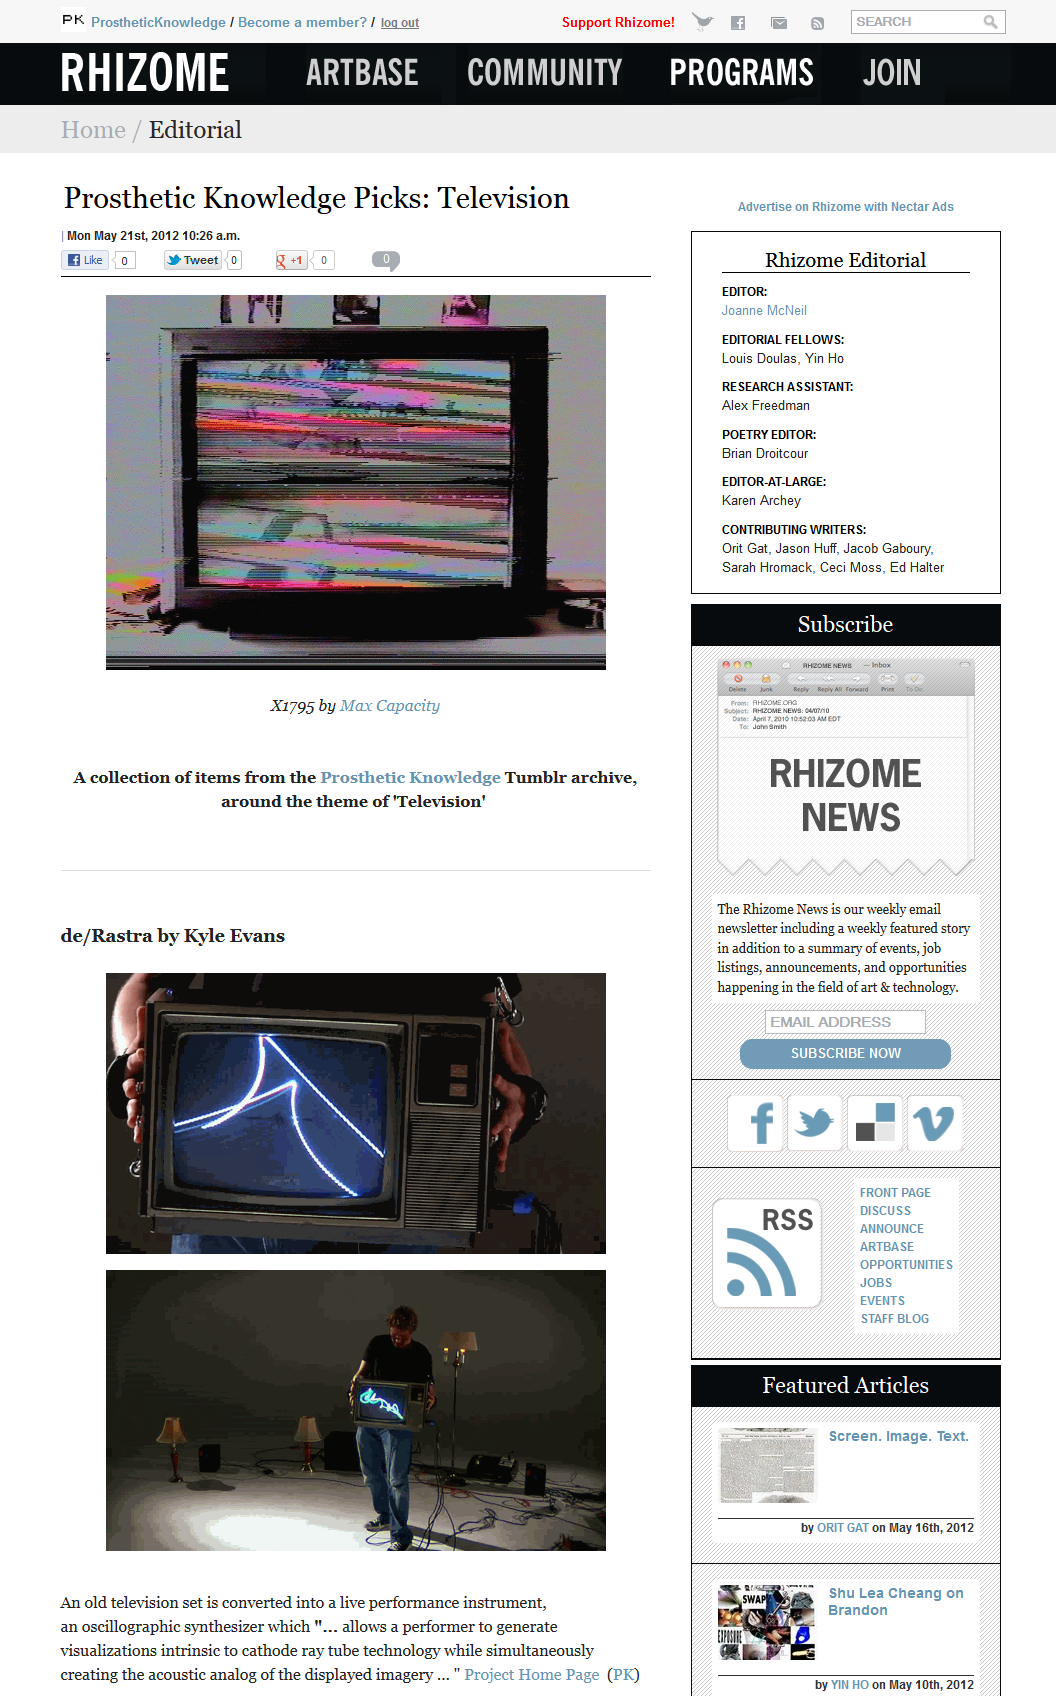 Prosthetic Knowledge Picks: Television A piece I have contributed to Rhizome, a small selection of items from this blog's archive related to the theme of 'Television'. You can see the whole post here